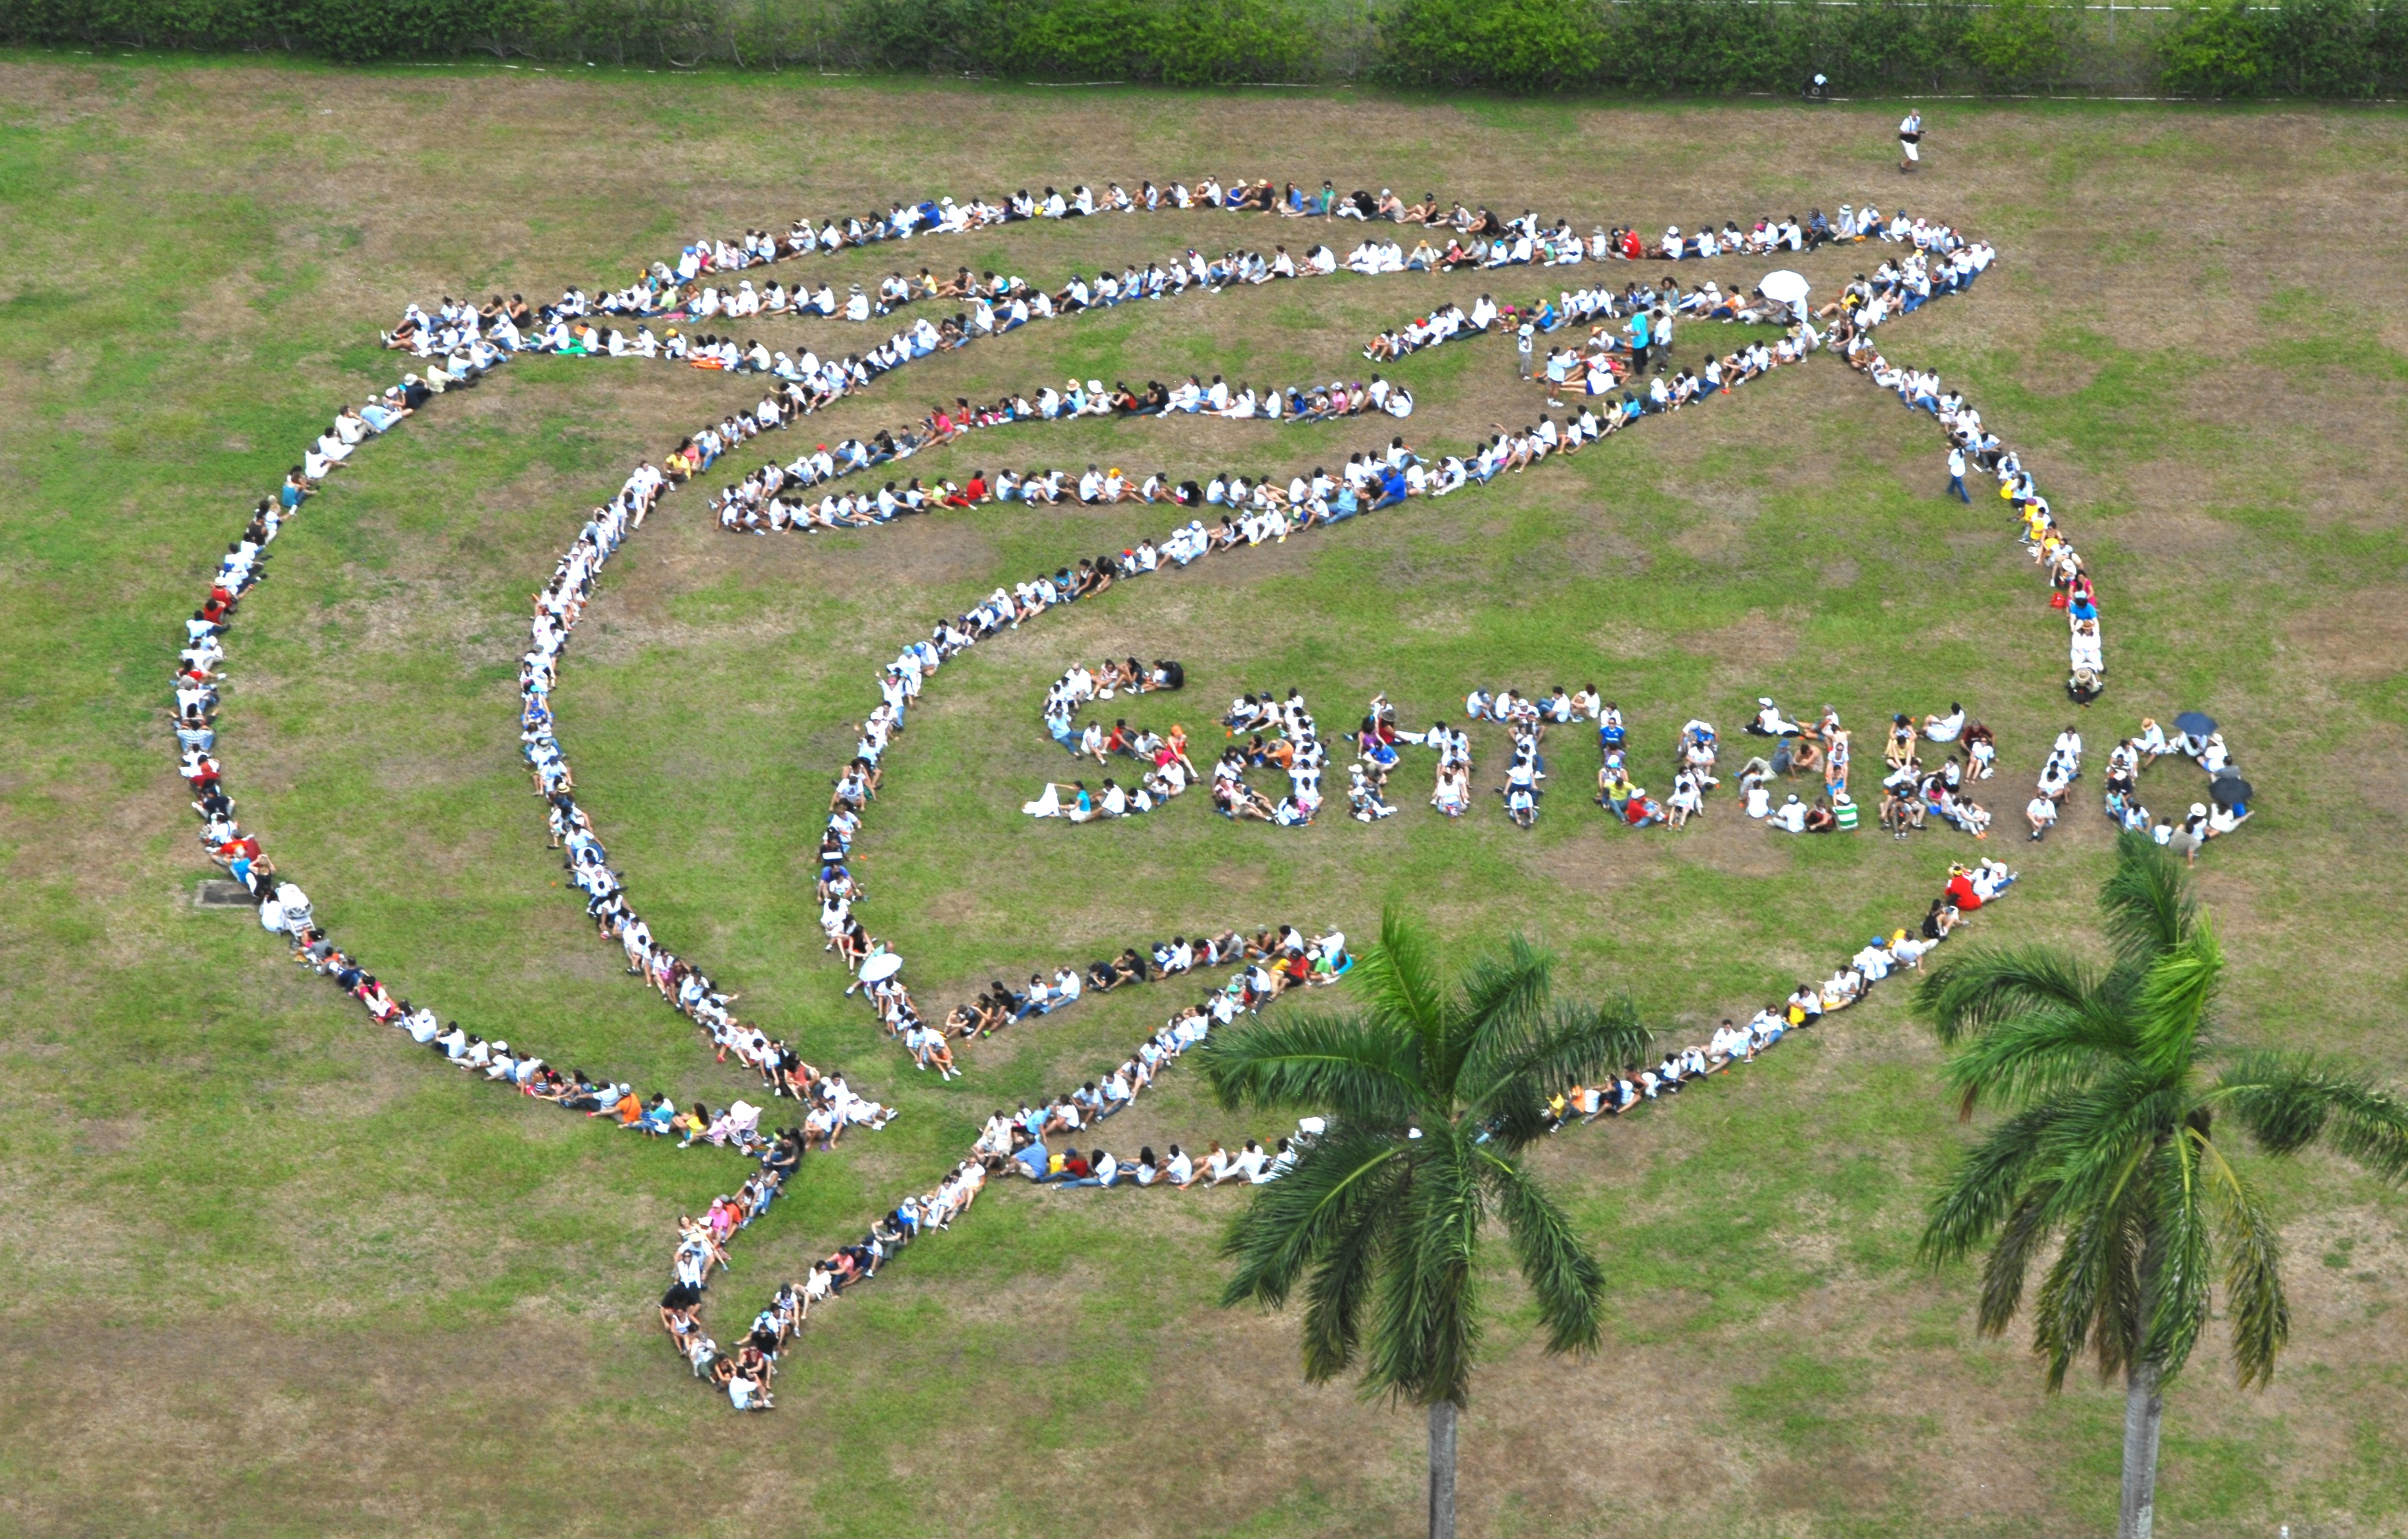 Creative action to promote Whale Sanctuaries in the South Pacific. Photo by Spectral Q.